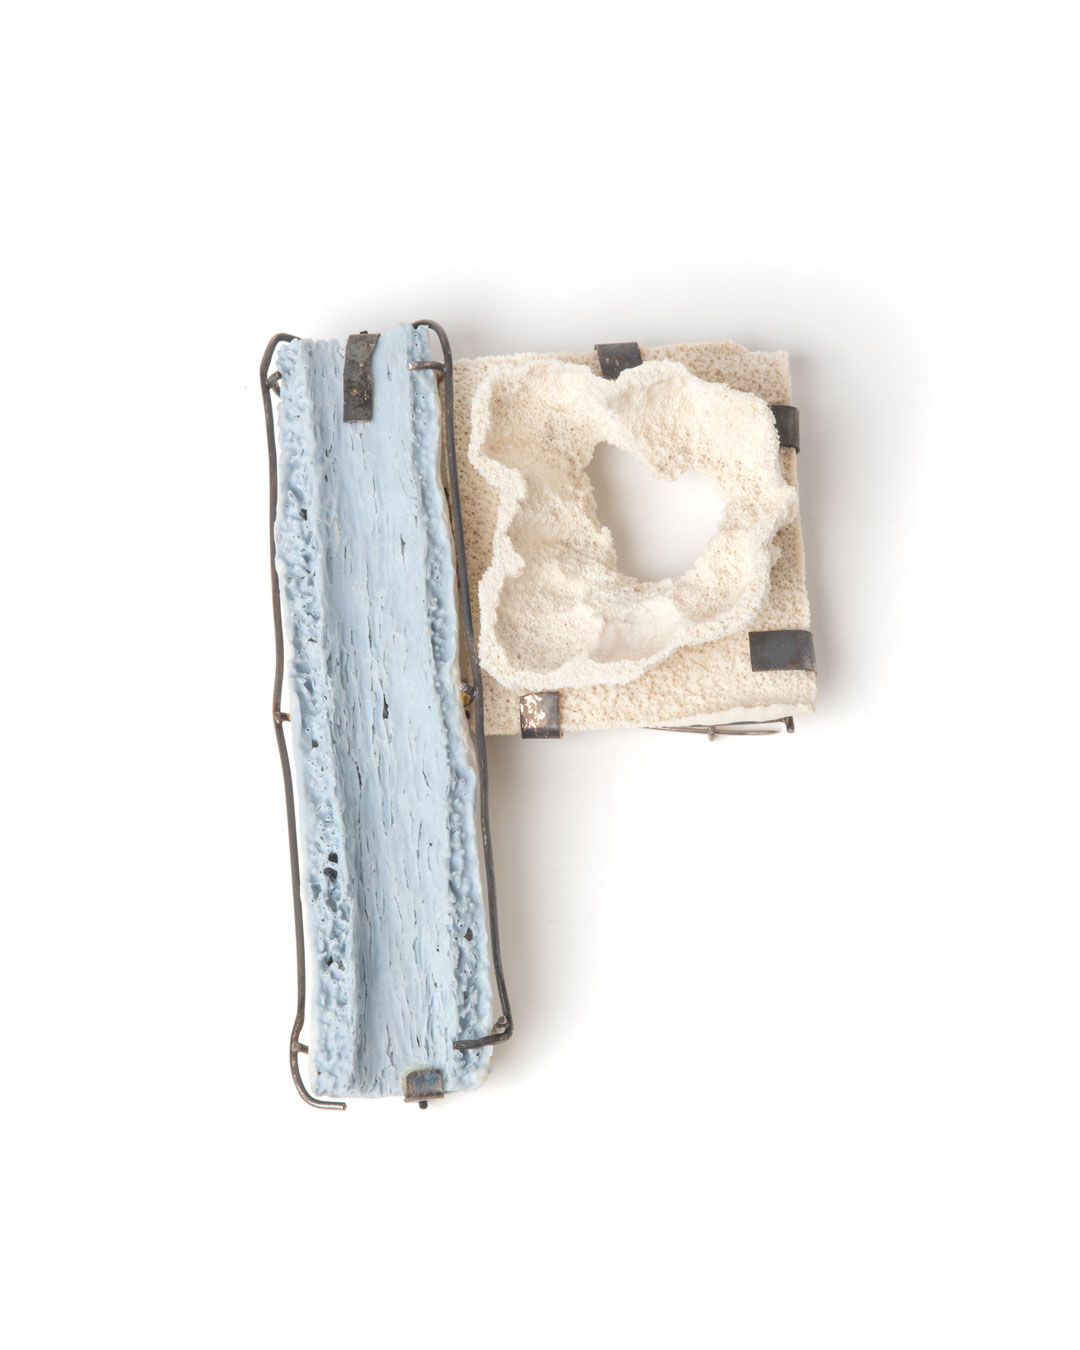 Trinidad Contreras, untitled, 2015, brooch; porcelain, oxidised silver, steel, 115 x 75 x 16 mm, €920